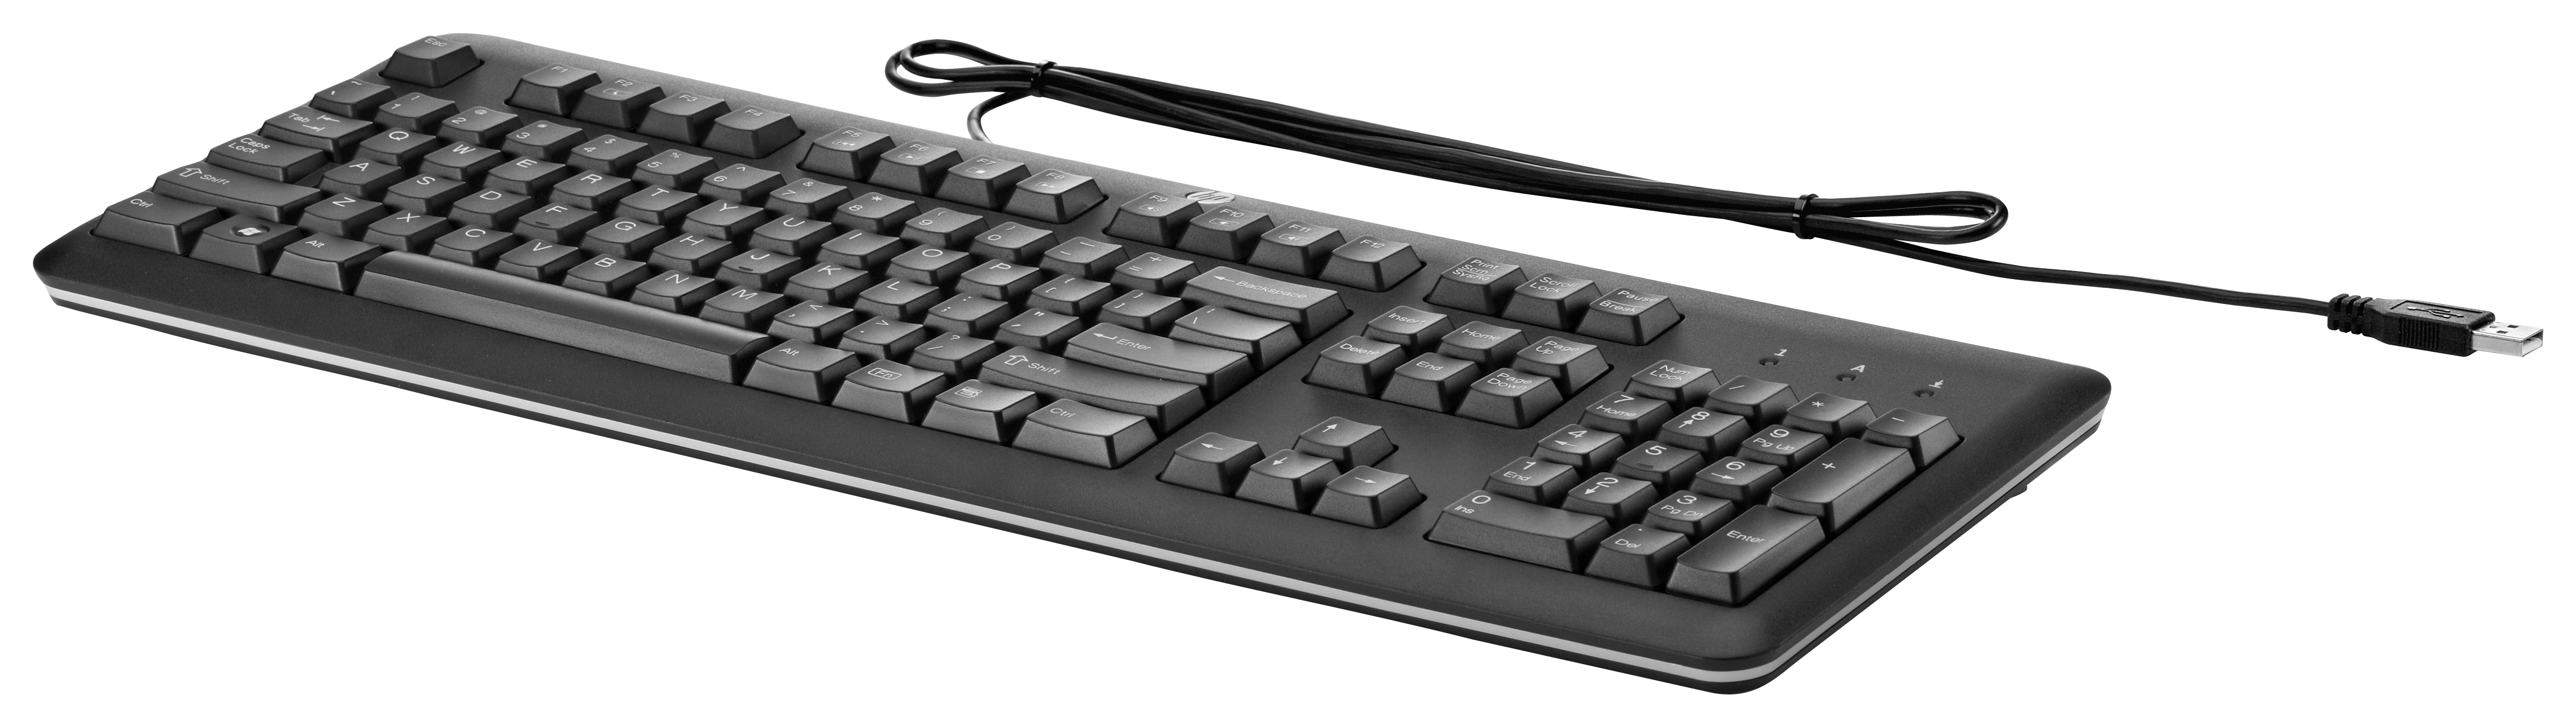 QY776AA#UUZ HP USB Keyboard For PC - Swiss Factory Sealed